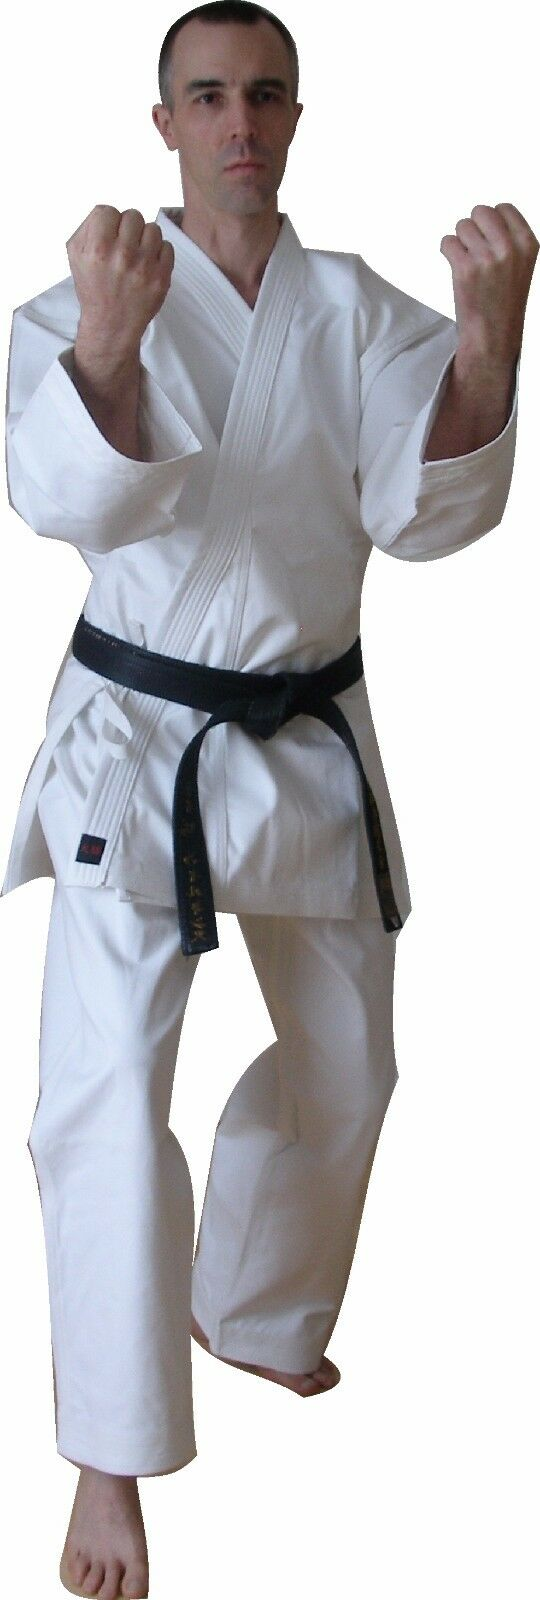 KARATE SUITS - HEAVYWEIGHT (16oz) - WHITE - Sizes from 160cm to 190cm - cotton